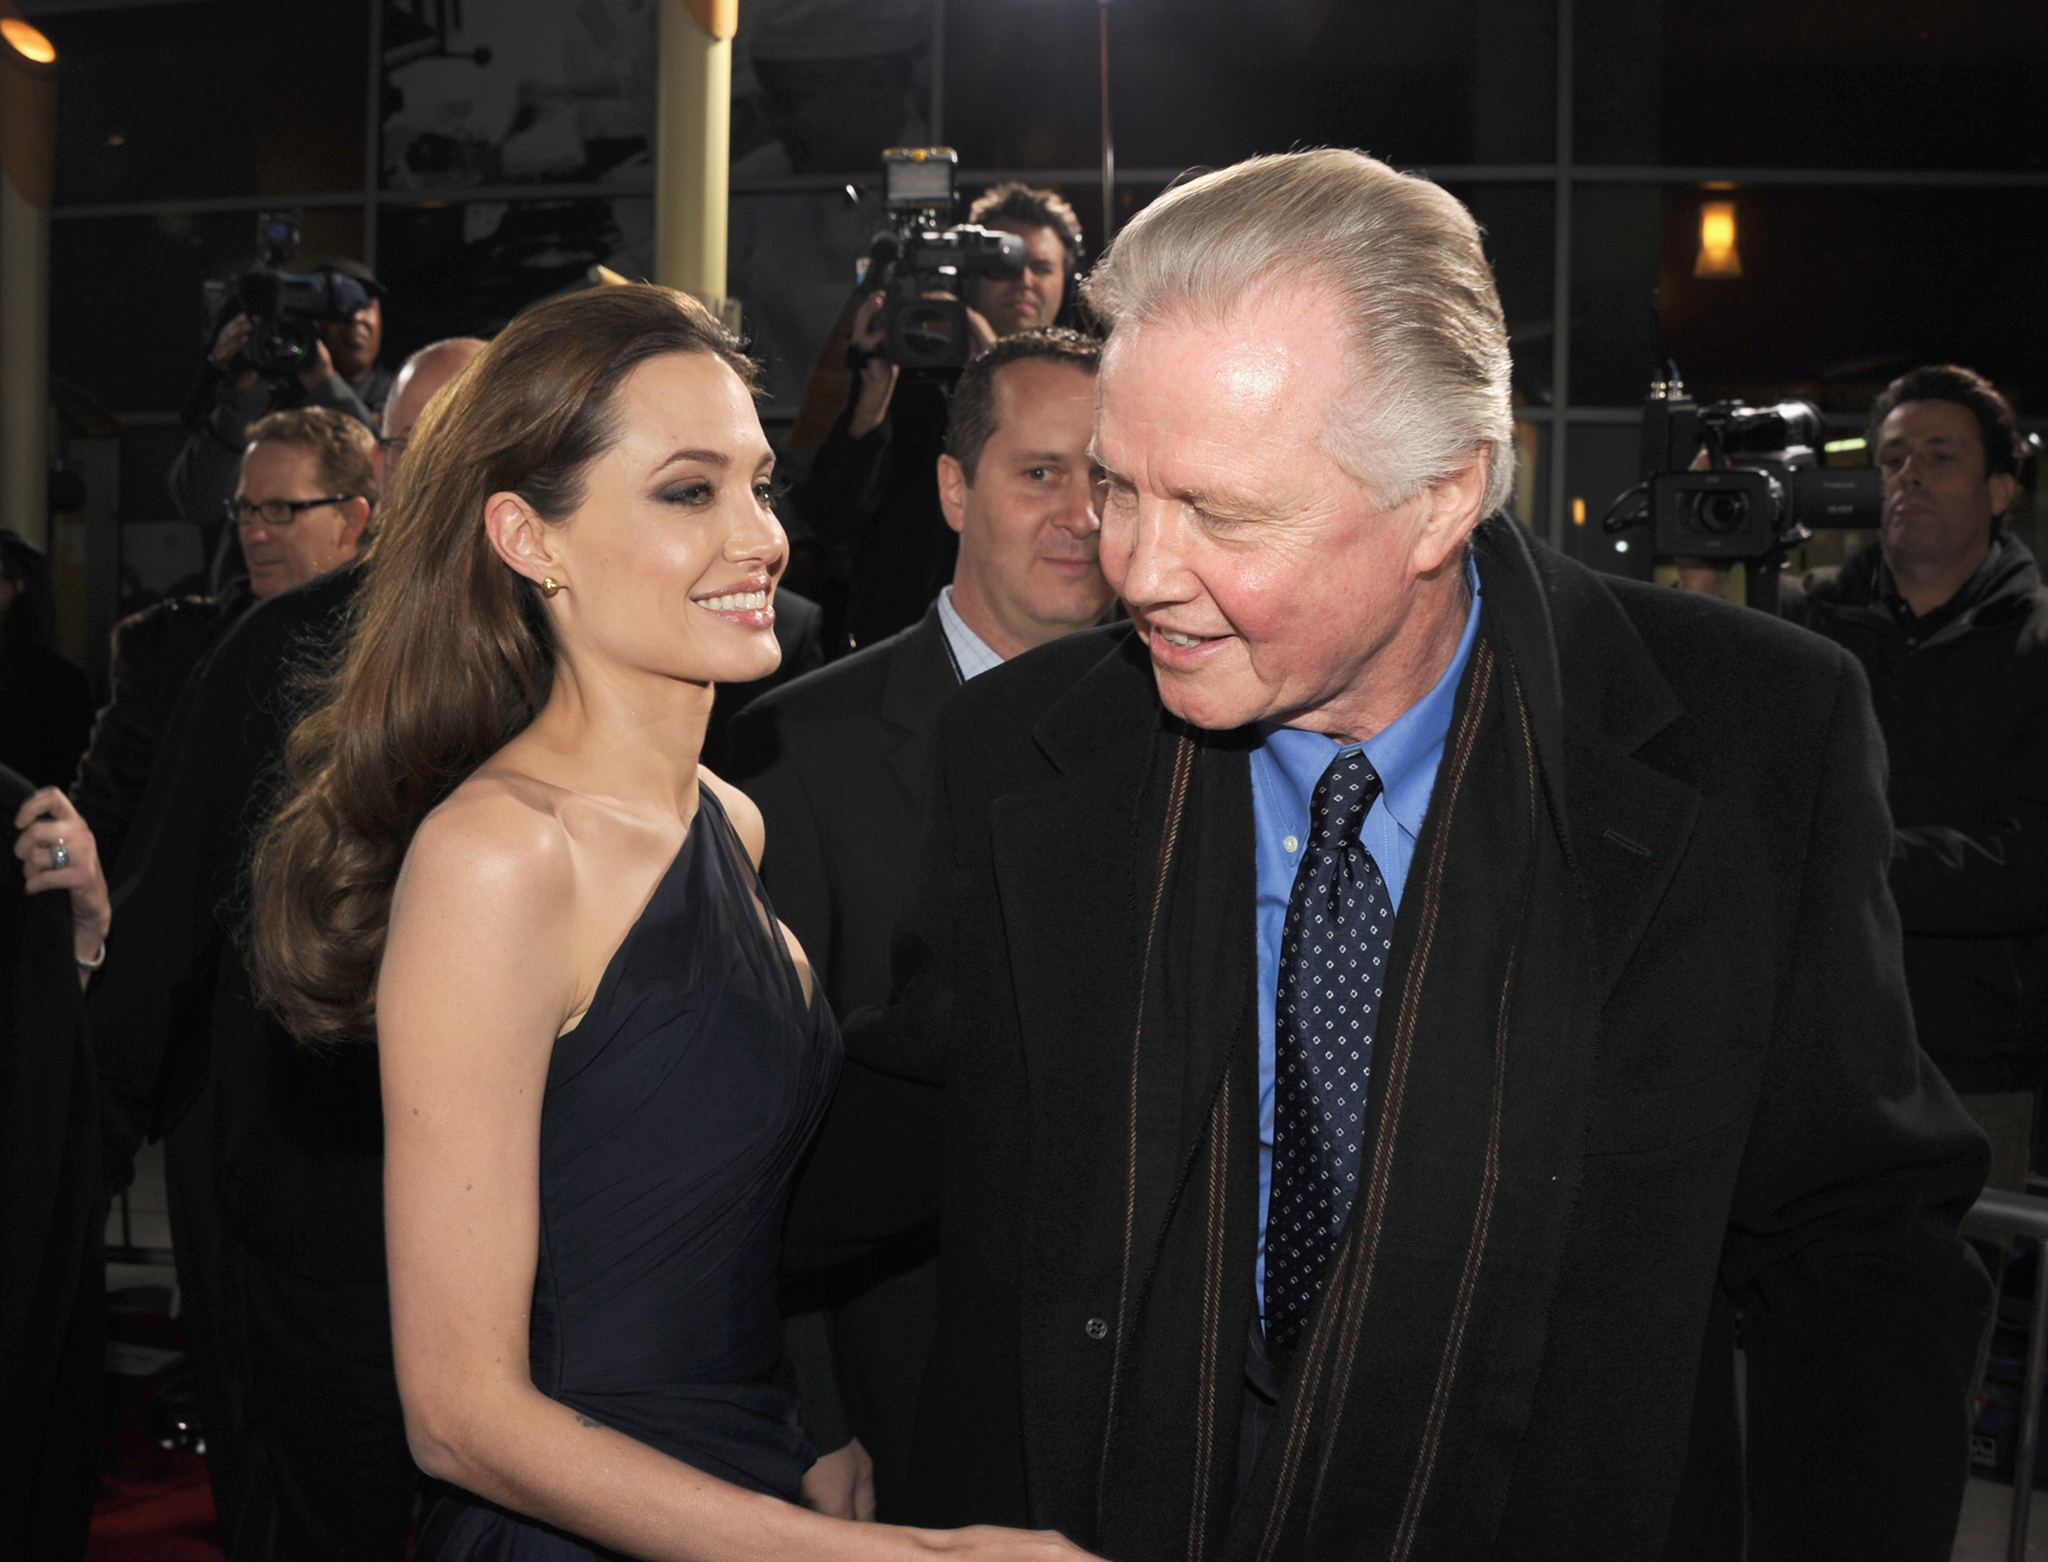 "HOLLYWOOD, CA - DECEMBER 08: Writer/director Angelina Jolie (L) and actorJon Voight arrive at the premiere of FilmDistrict's ""In the Land of Blood and Honey"" held at ArcLight Cinemas on December 8, 2011 in Hollywood, California. (Photo by Kevin Winter/Getty Images)"